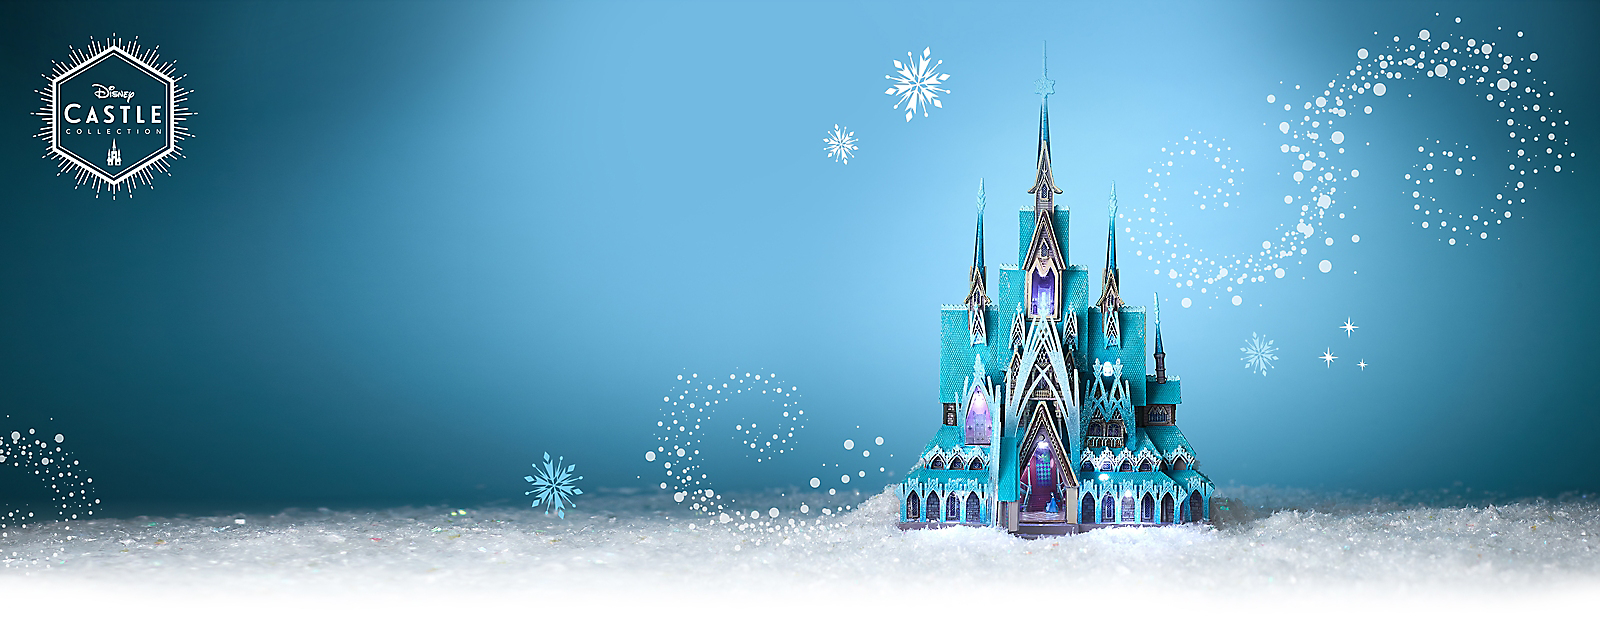 Background image of The Disney Castle Collection